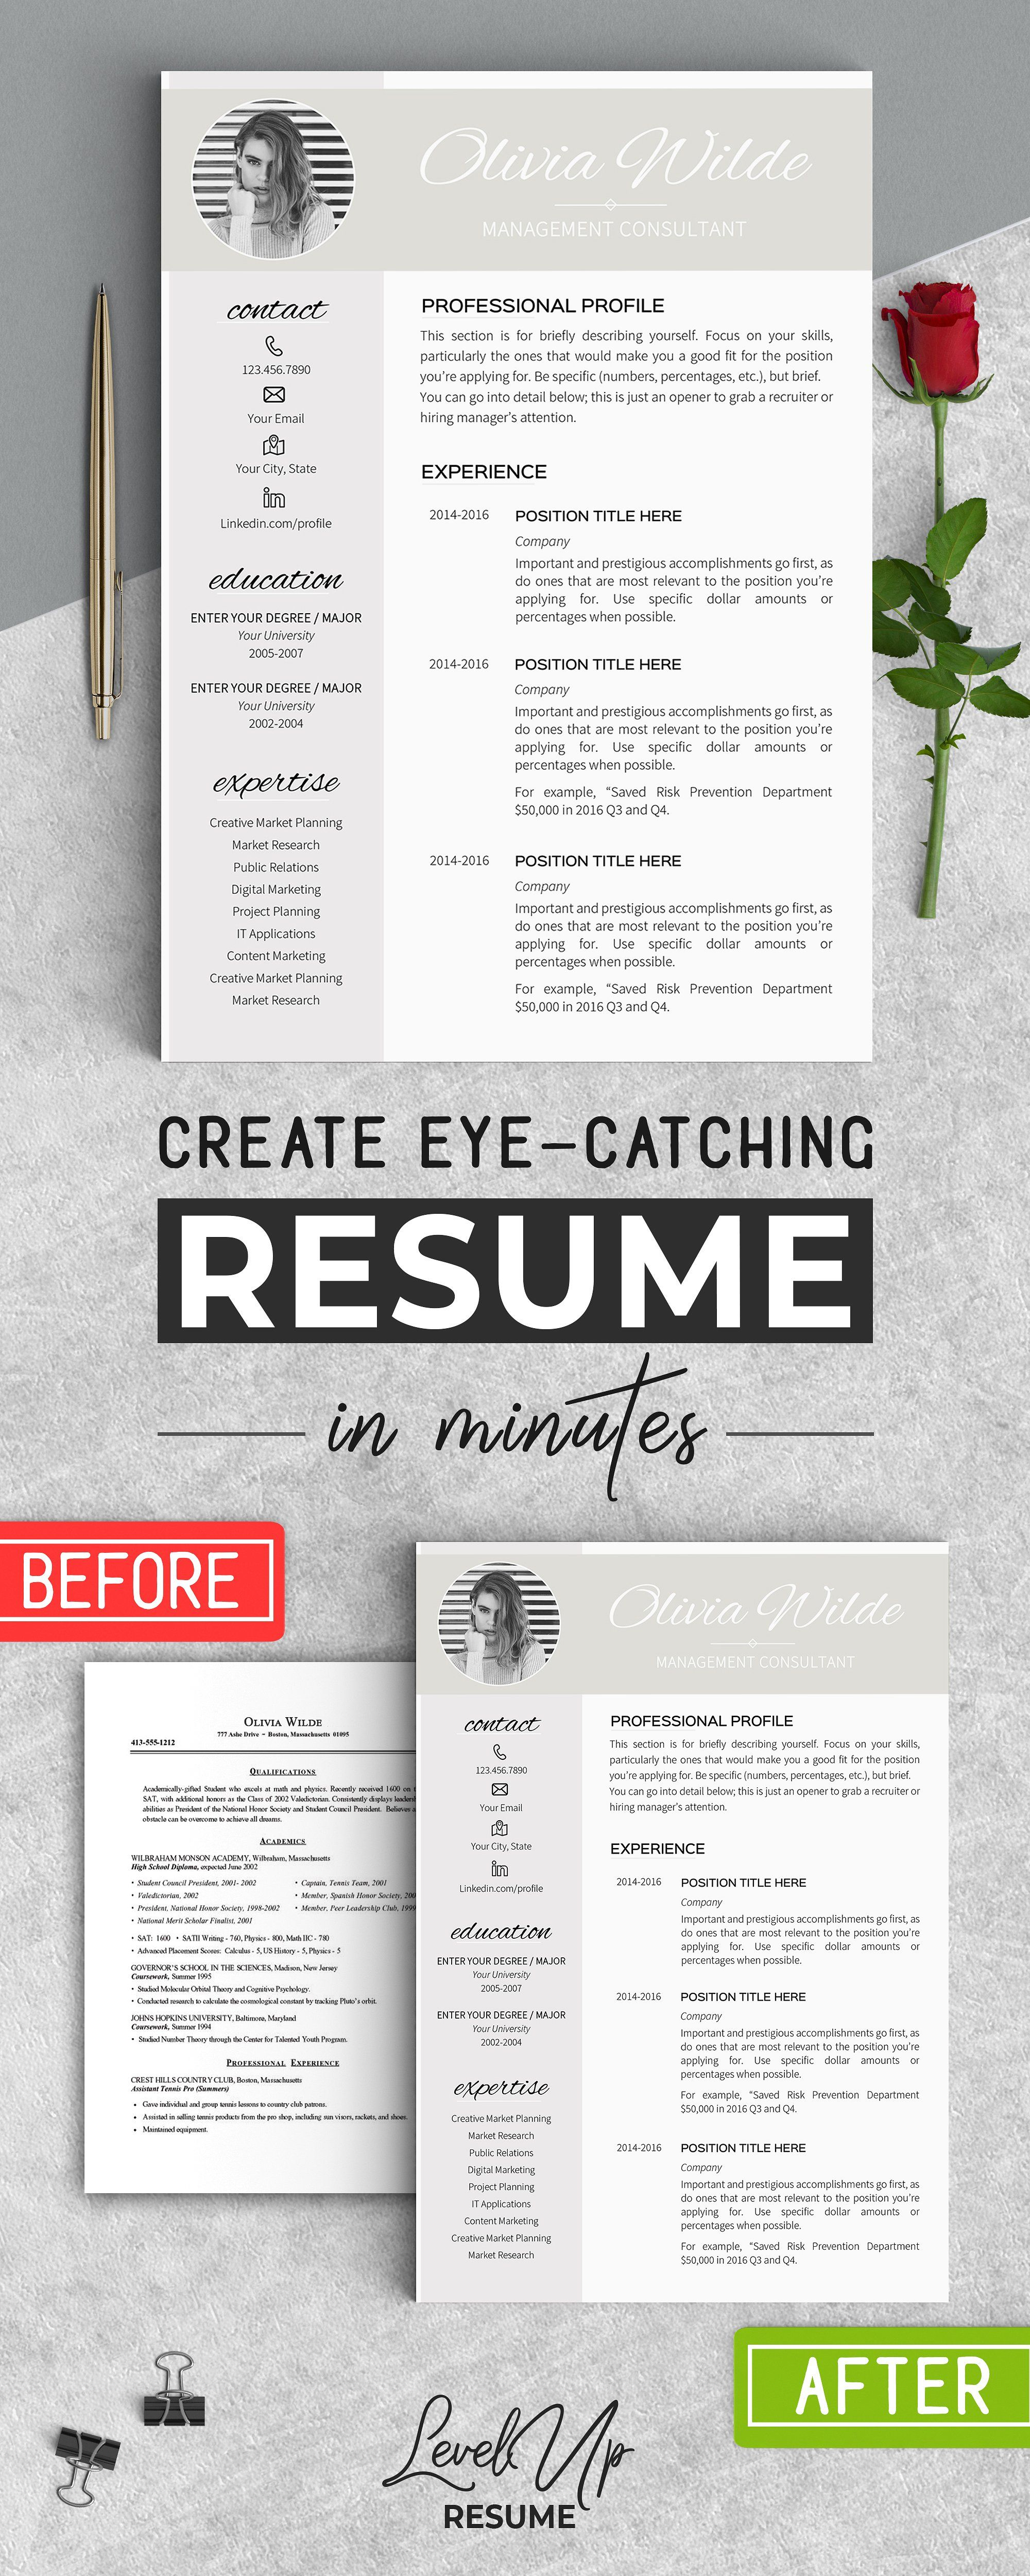 Resume Template for Word | Template, Resume writing and Resume cover ...